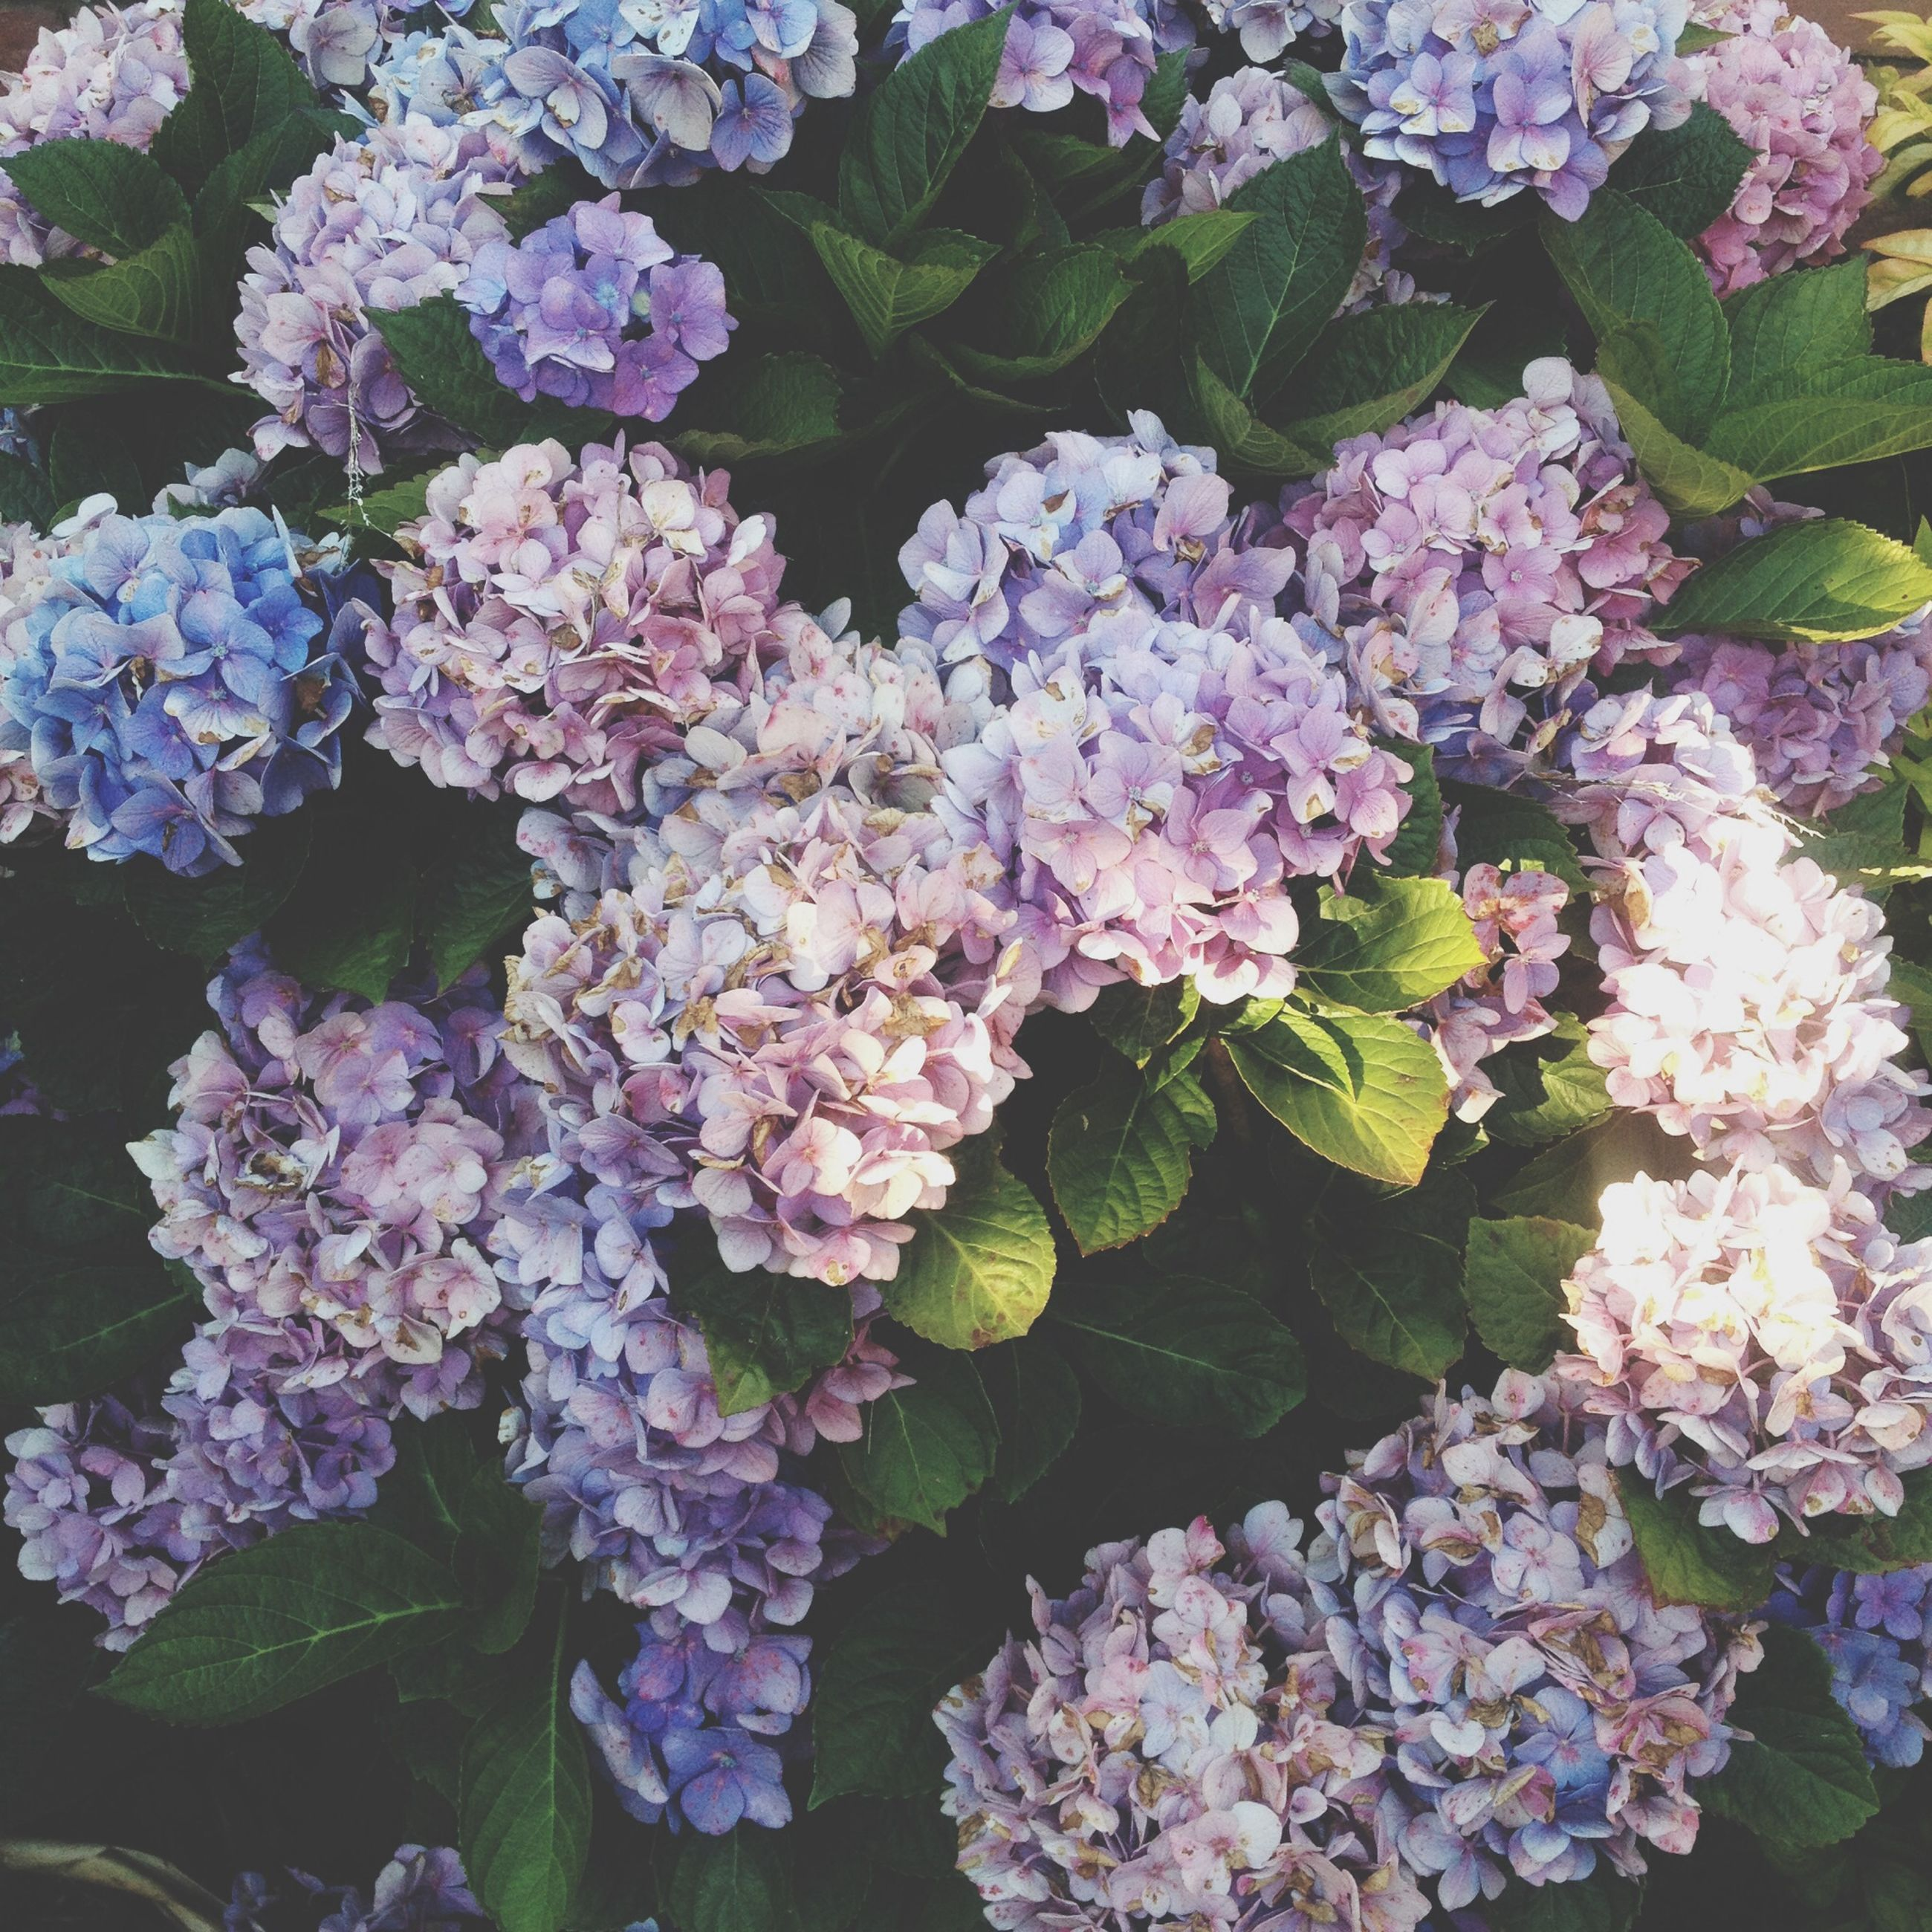 flower, freshness, fragility, petal, growth, beauty in nature, blooming, plant, flower head, nature, leaf, pink color, high angle view, purple, in bloom, park - man made space, hydrangea, outdoors, blossom, springtime